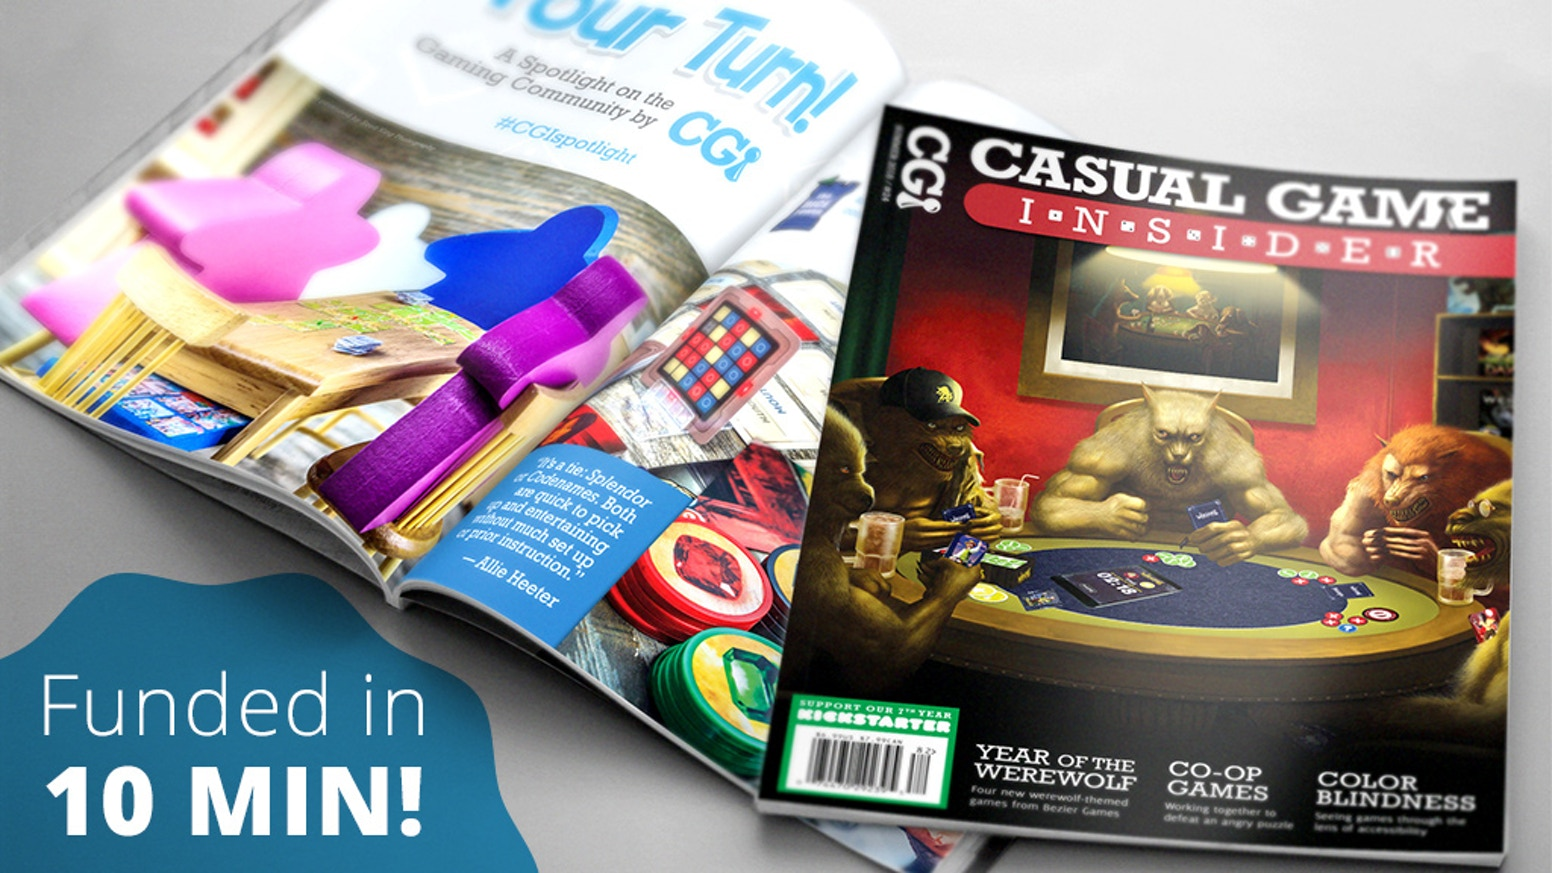 A quarterly board gaming magazine that focuses on the best new casual games from a wide variety of publishers. Time to start reading!